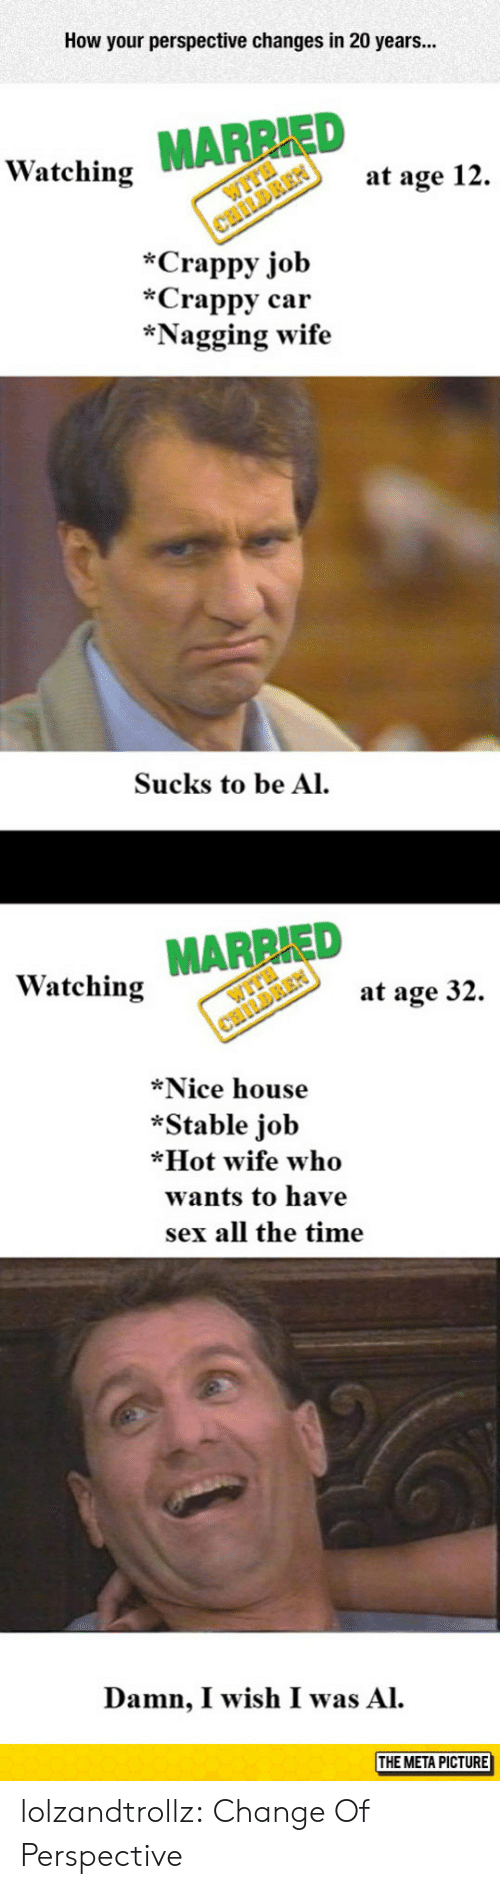 Metas: How your perspective changes in 20 years...  ED  Watching  at age 12.  *Crappy job  *Crappy car  *Nagging wife  Sucks to be Al  Watching MARRIED  at age 32.  *Nice house  *Stable job  *Hot wife who  wants to have  sex all the time  Damn, I wish I was Al.  THE META PICTURE  МЕТАРіст lolzandtrollz:  Change Of Perspective